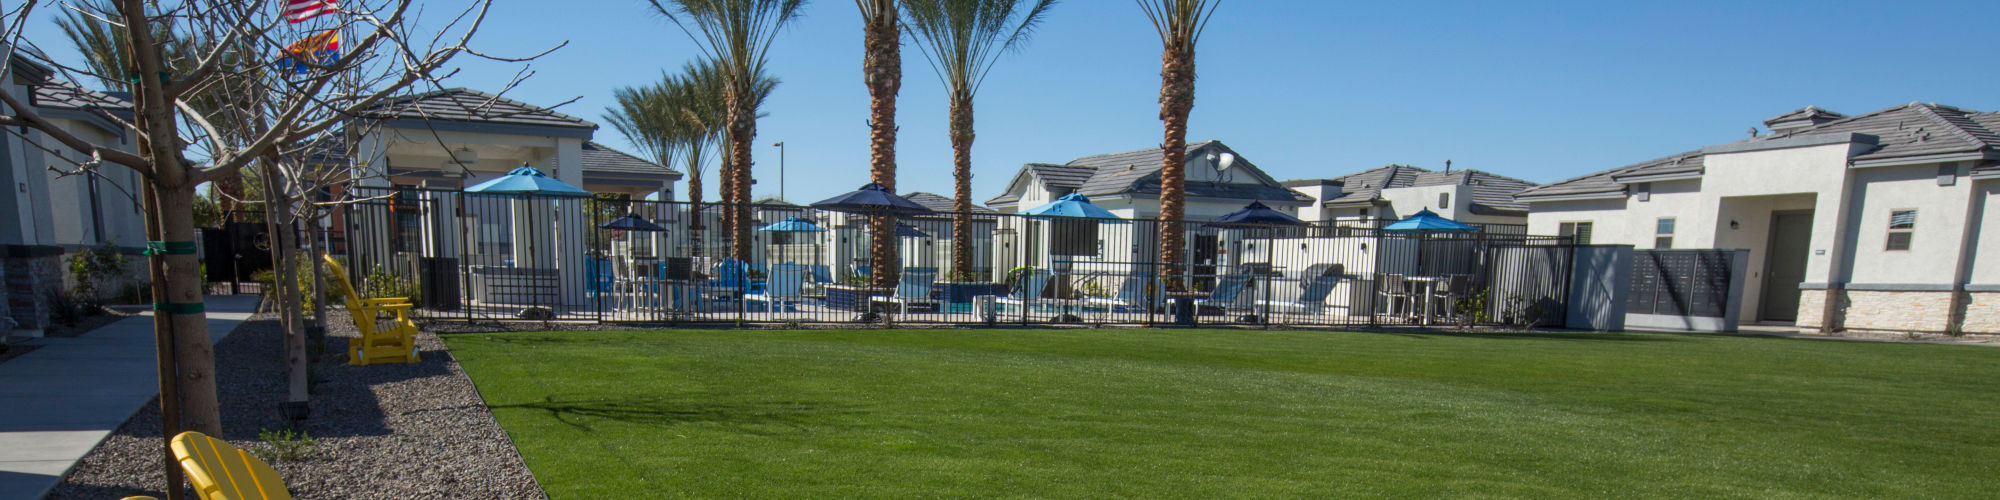 Reviews at Christopher Todd Communities At Marley Park in Surprise, Arizona